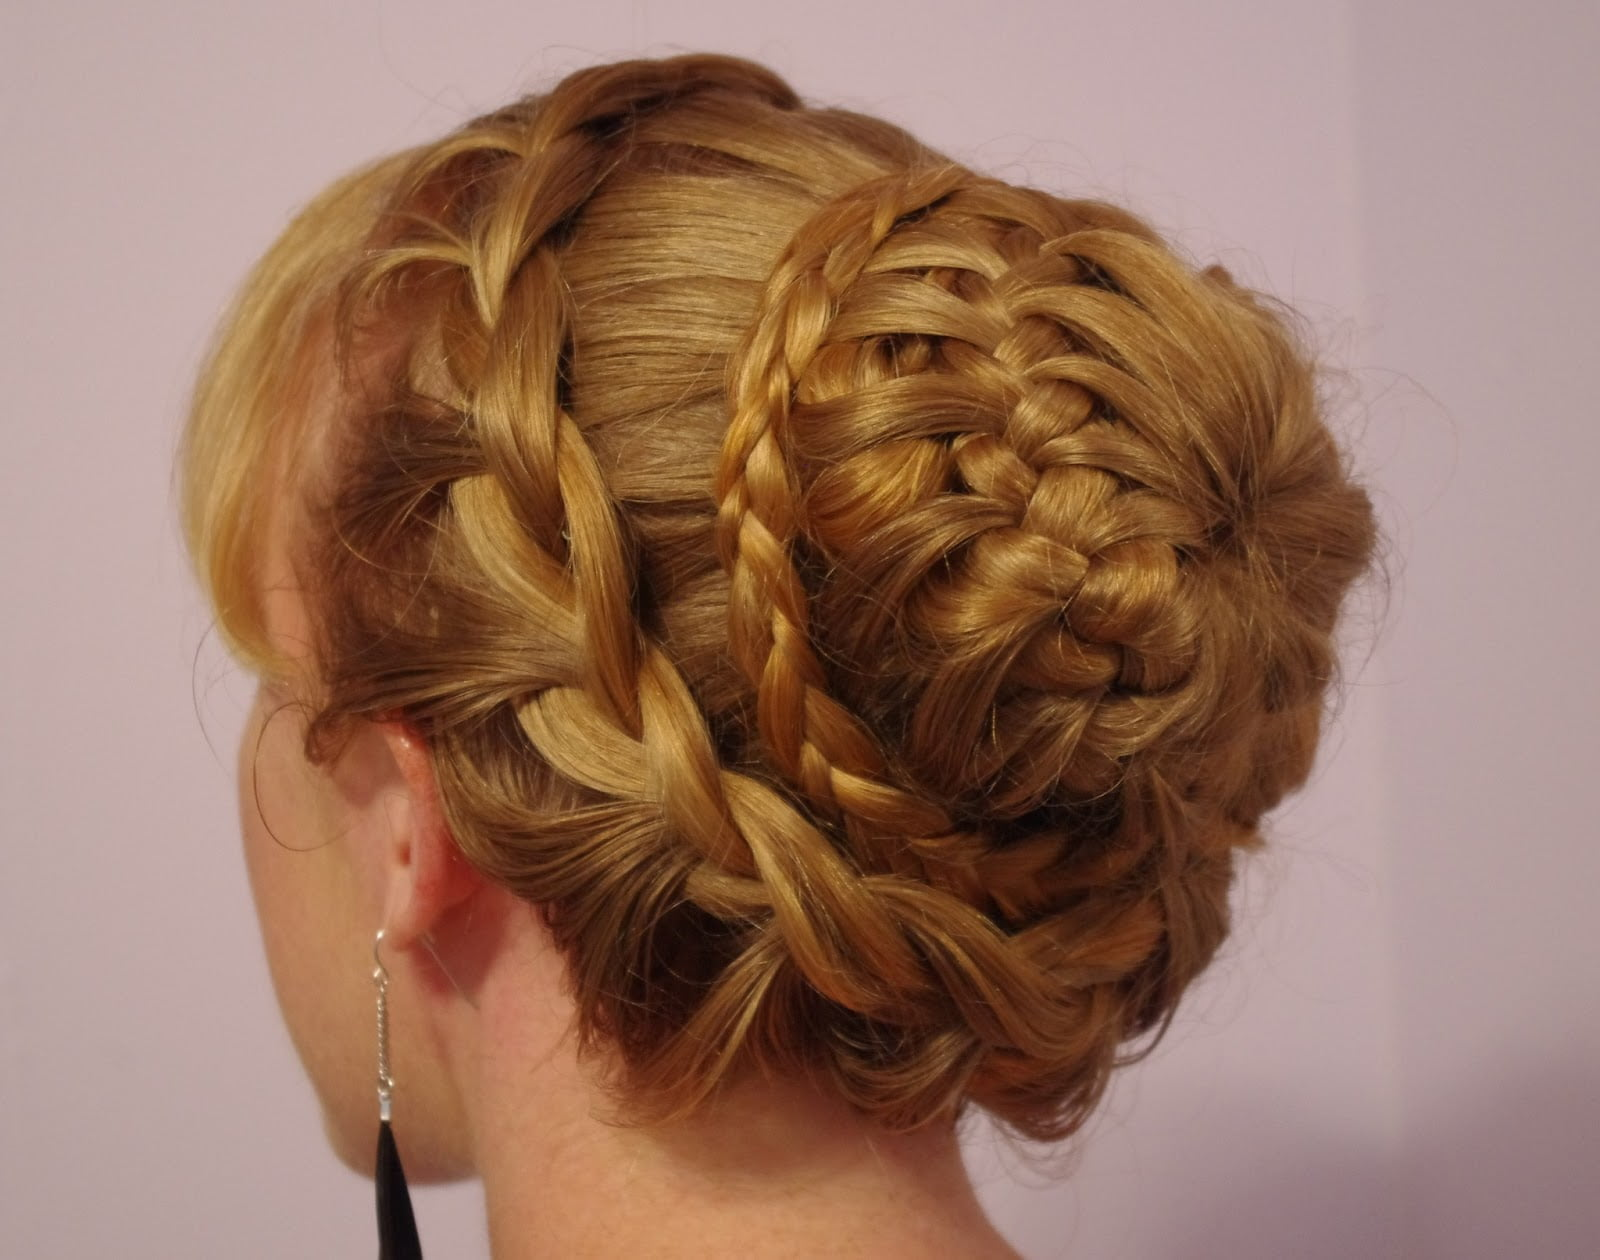 12 Useful Amazing Buns Hairstyles For Women 2016-2017 - HAIRSTYLES